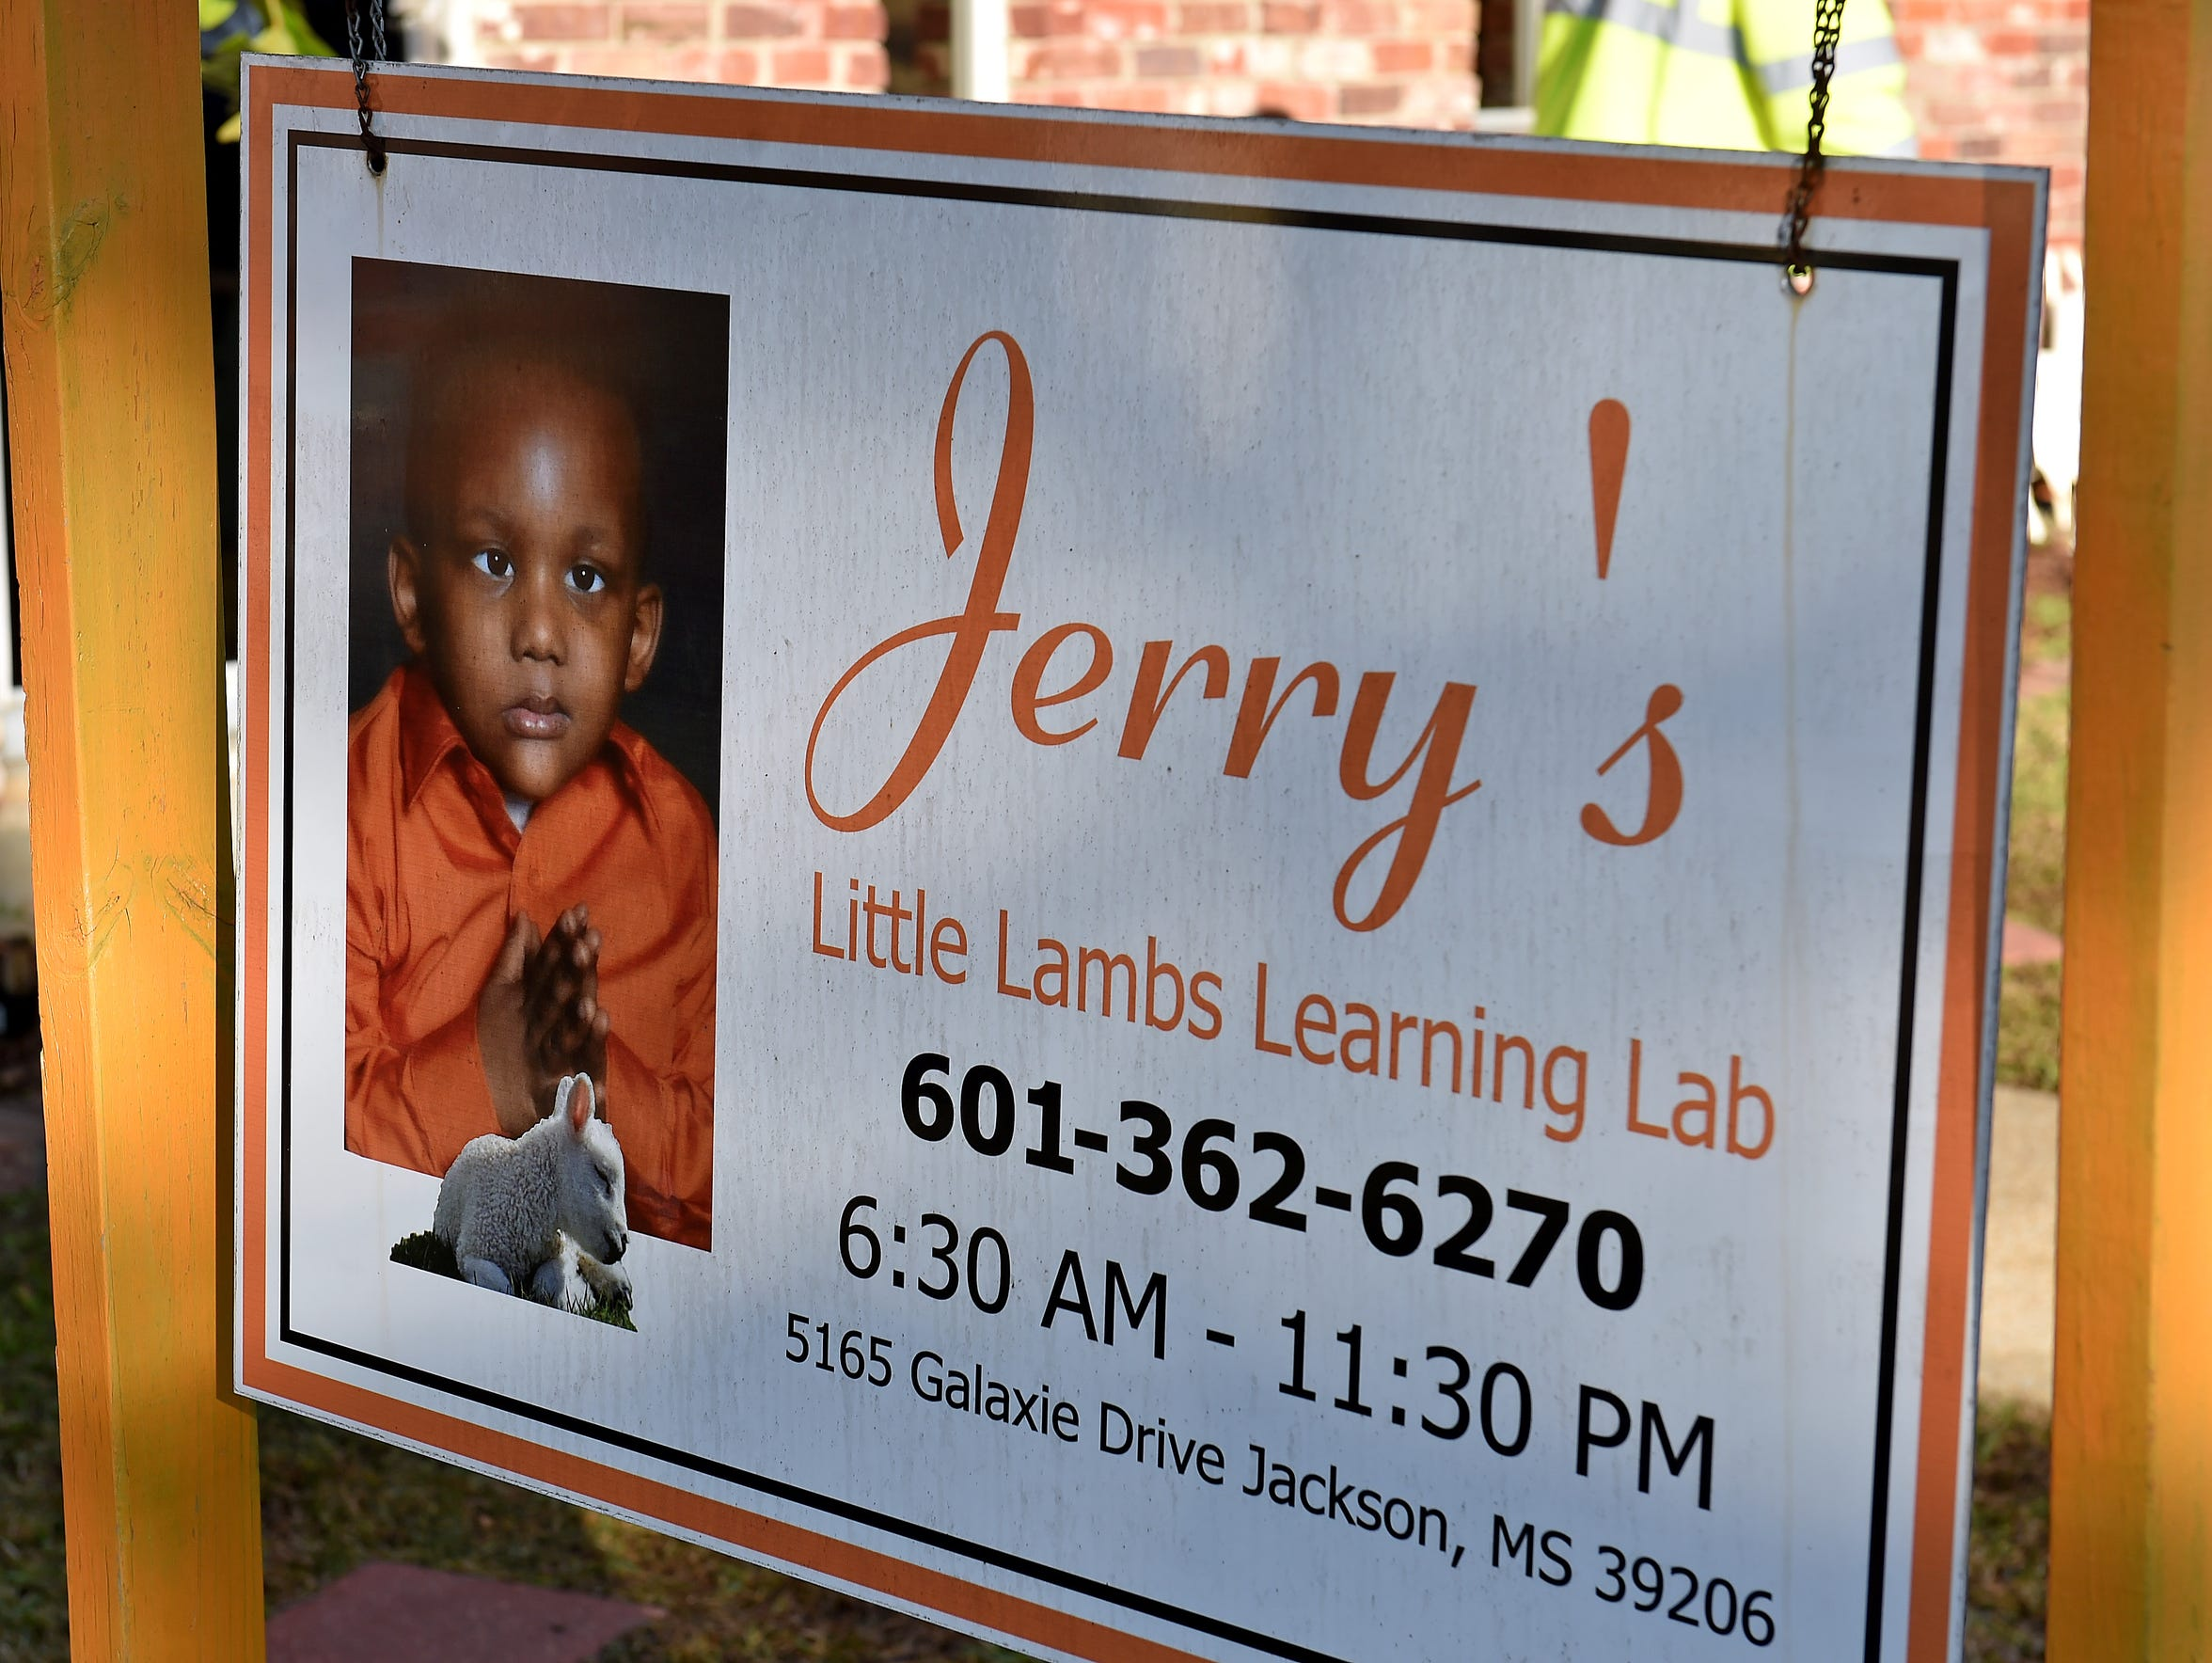 JoAnn Lindsey opened Jerry's Little Lambs Learning